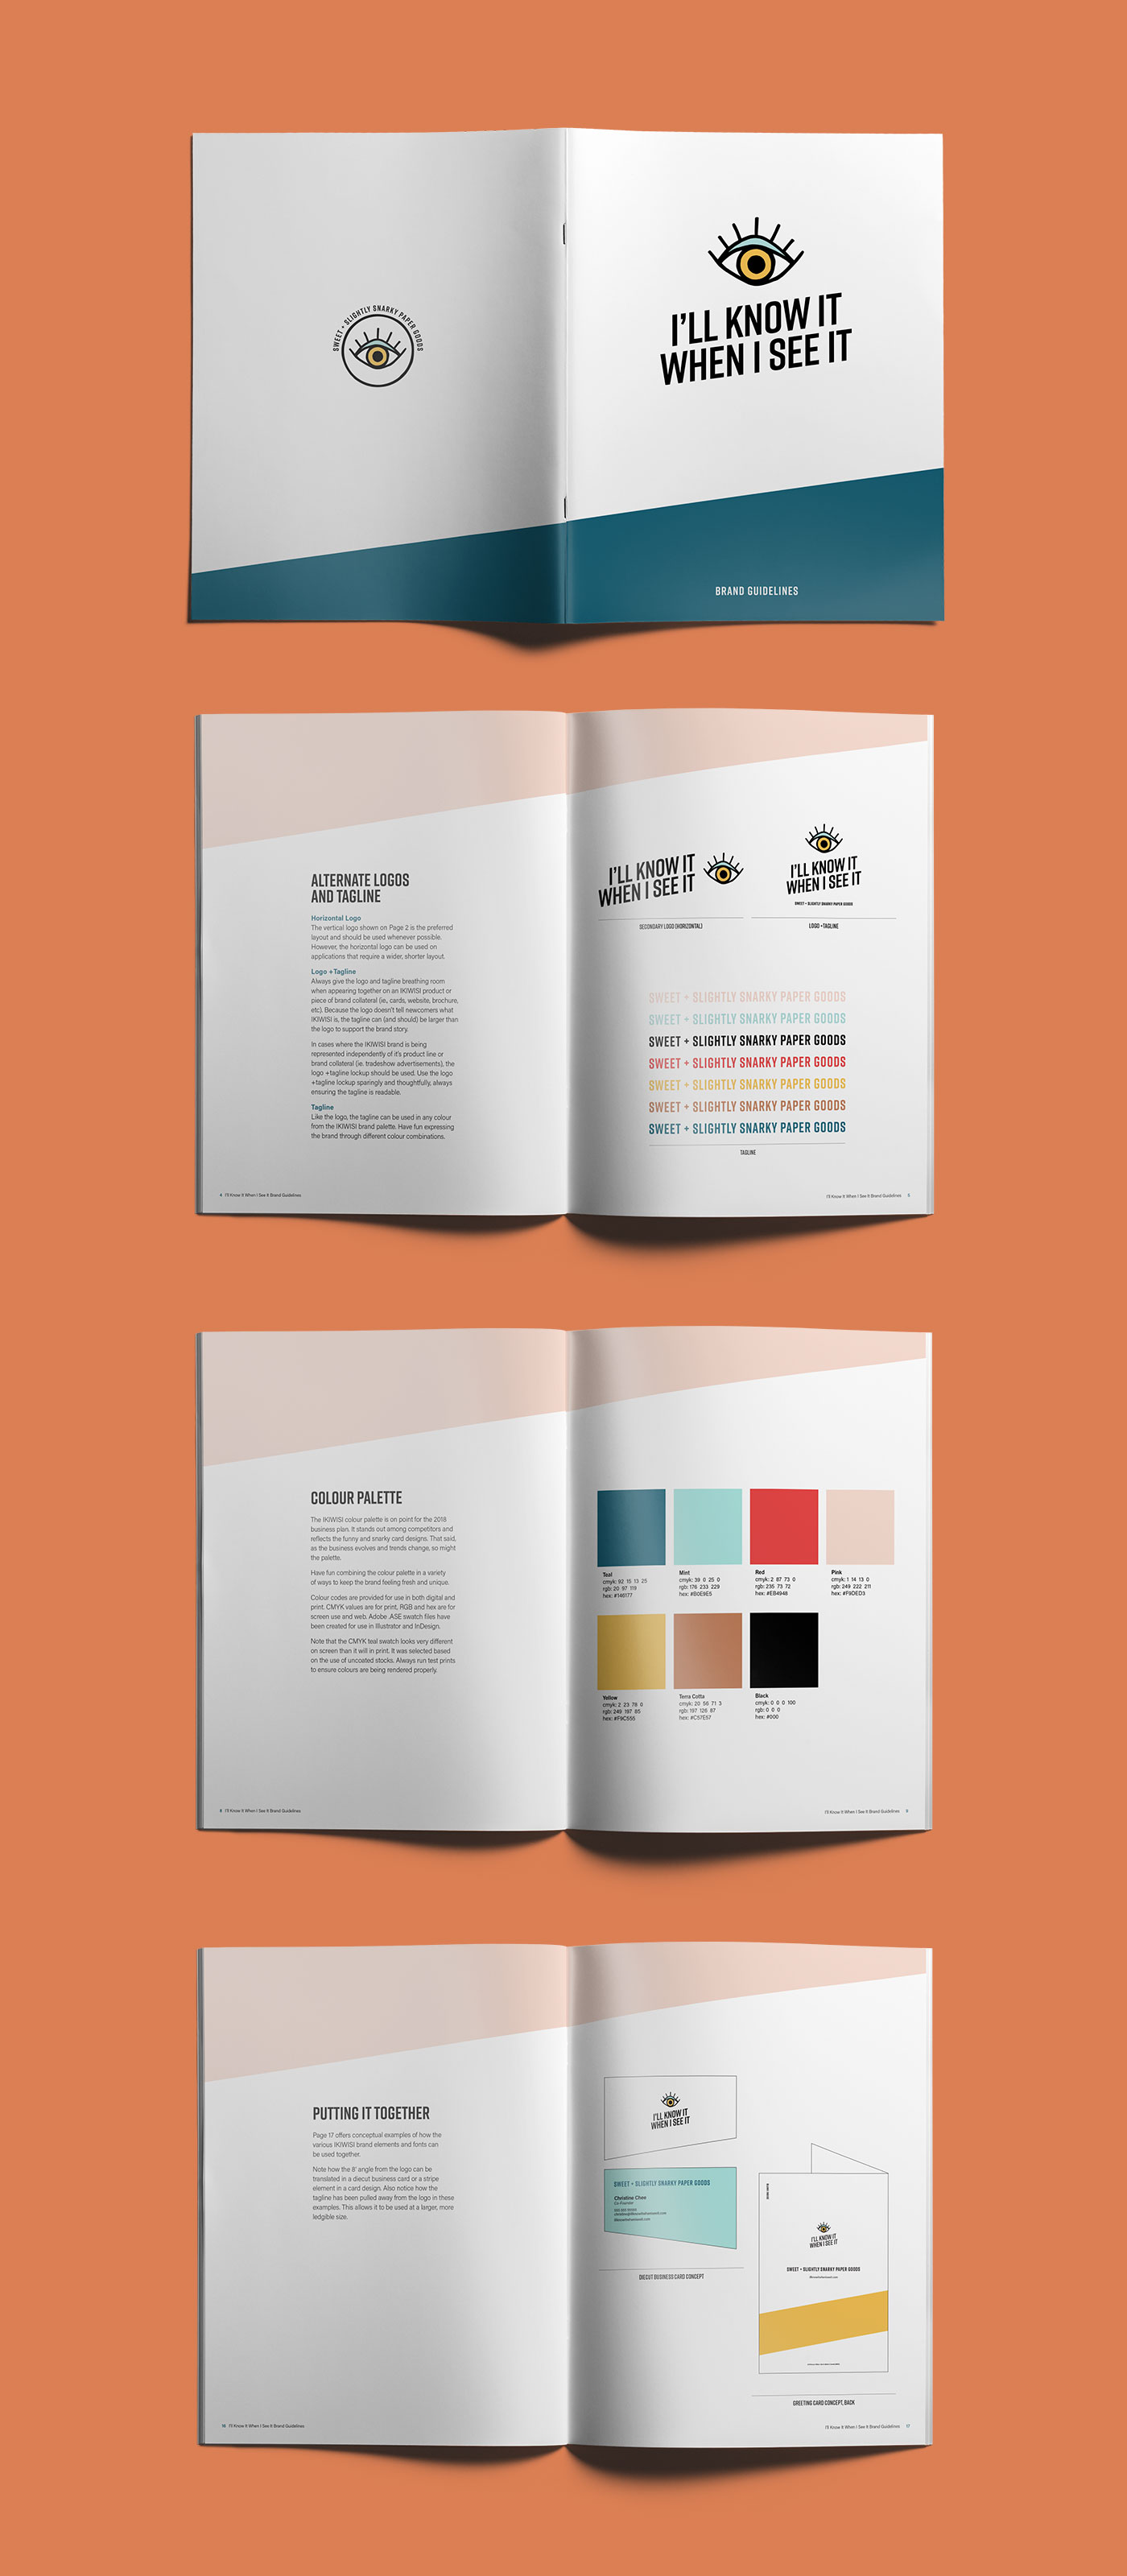 Brand guidelines for I'll Know It When I See It, by Vancouver-based marketing collective Flipside Creative.